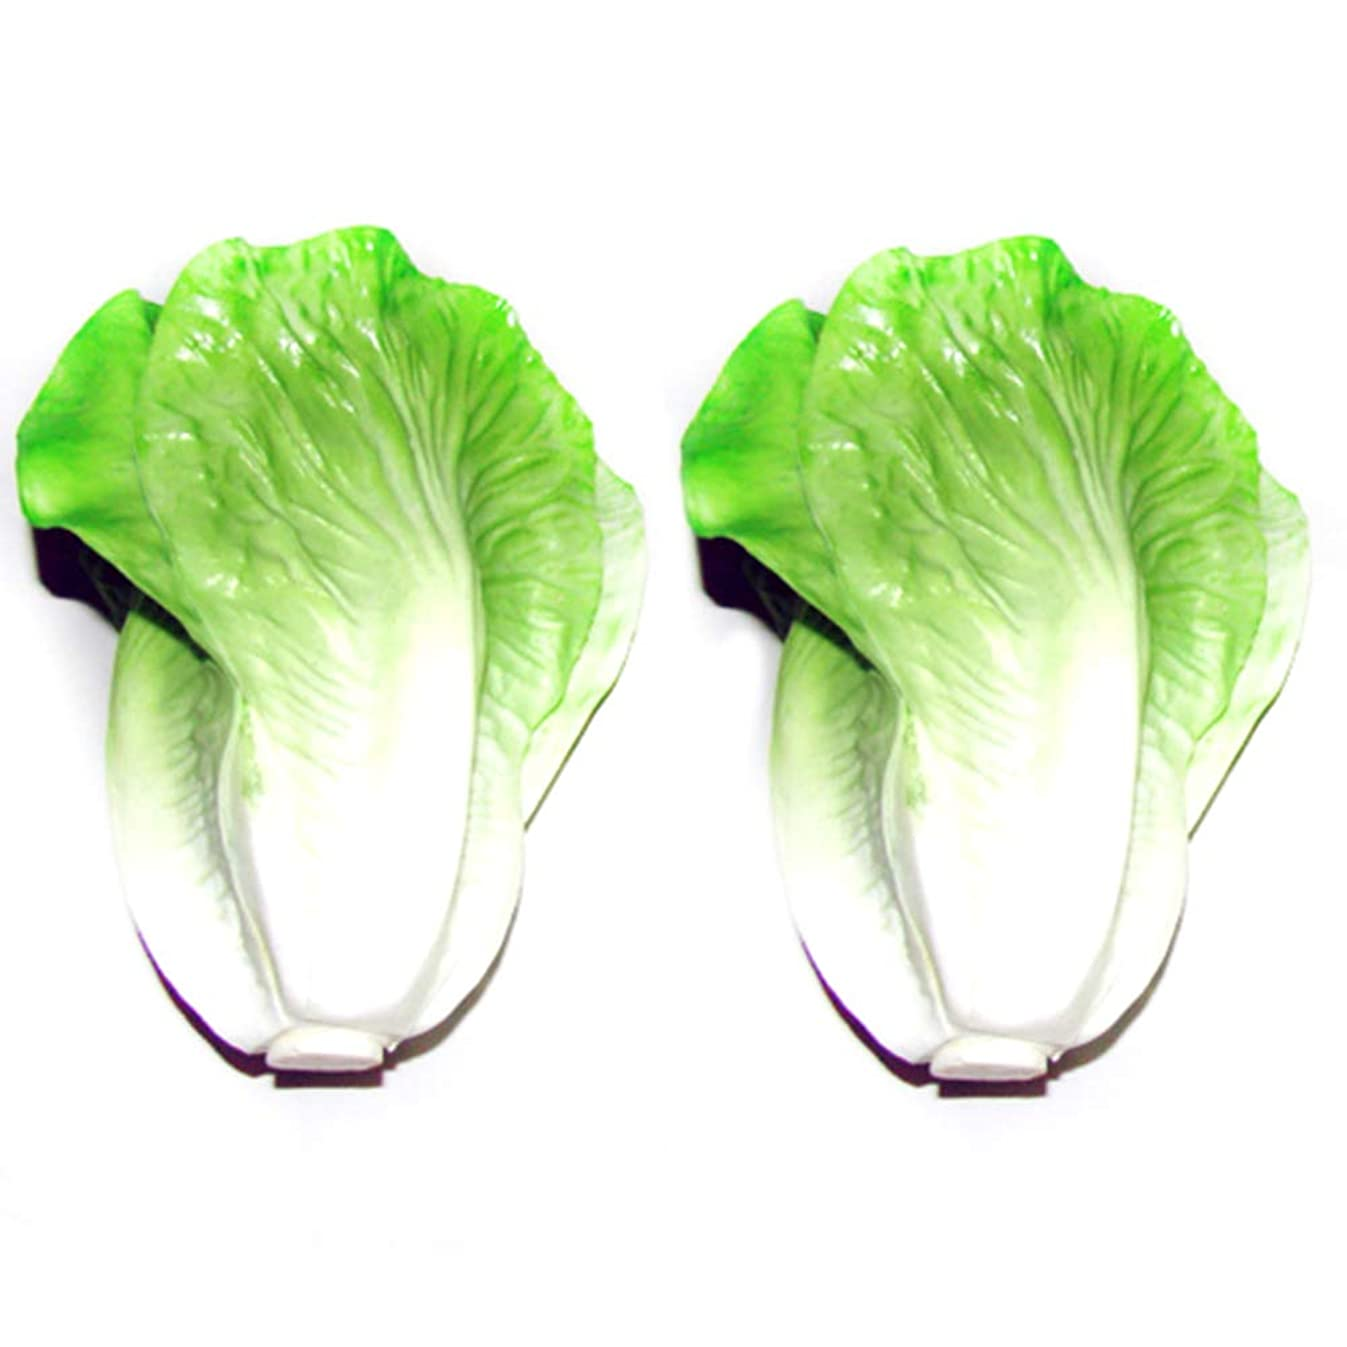 Generic Faux Lettuce Artificial Vegetables House Kitchen Party Decor Great Quality 2 Style